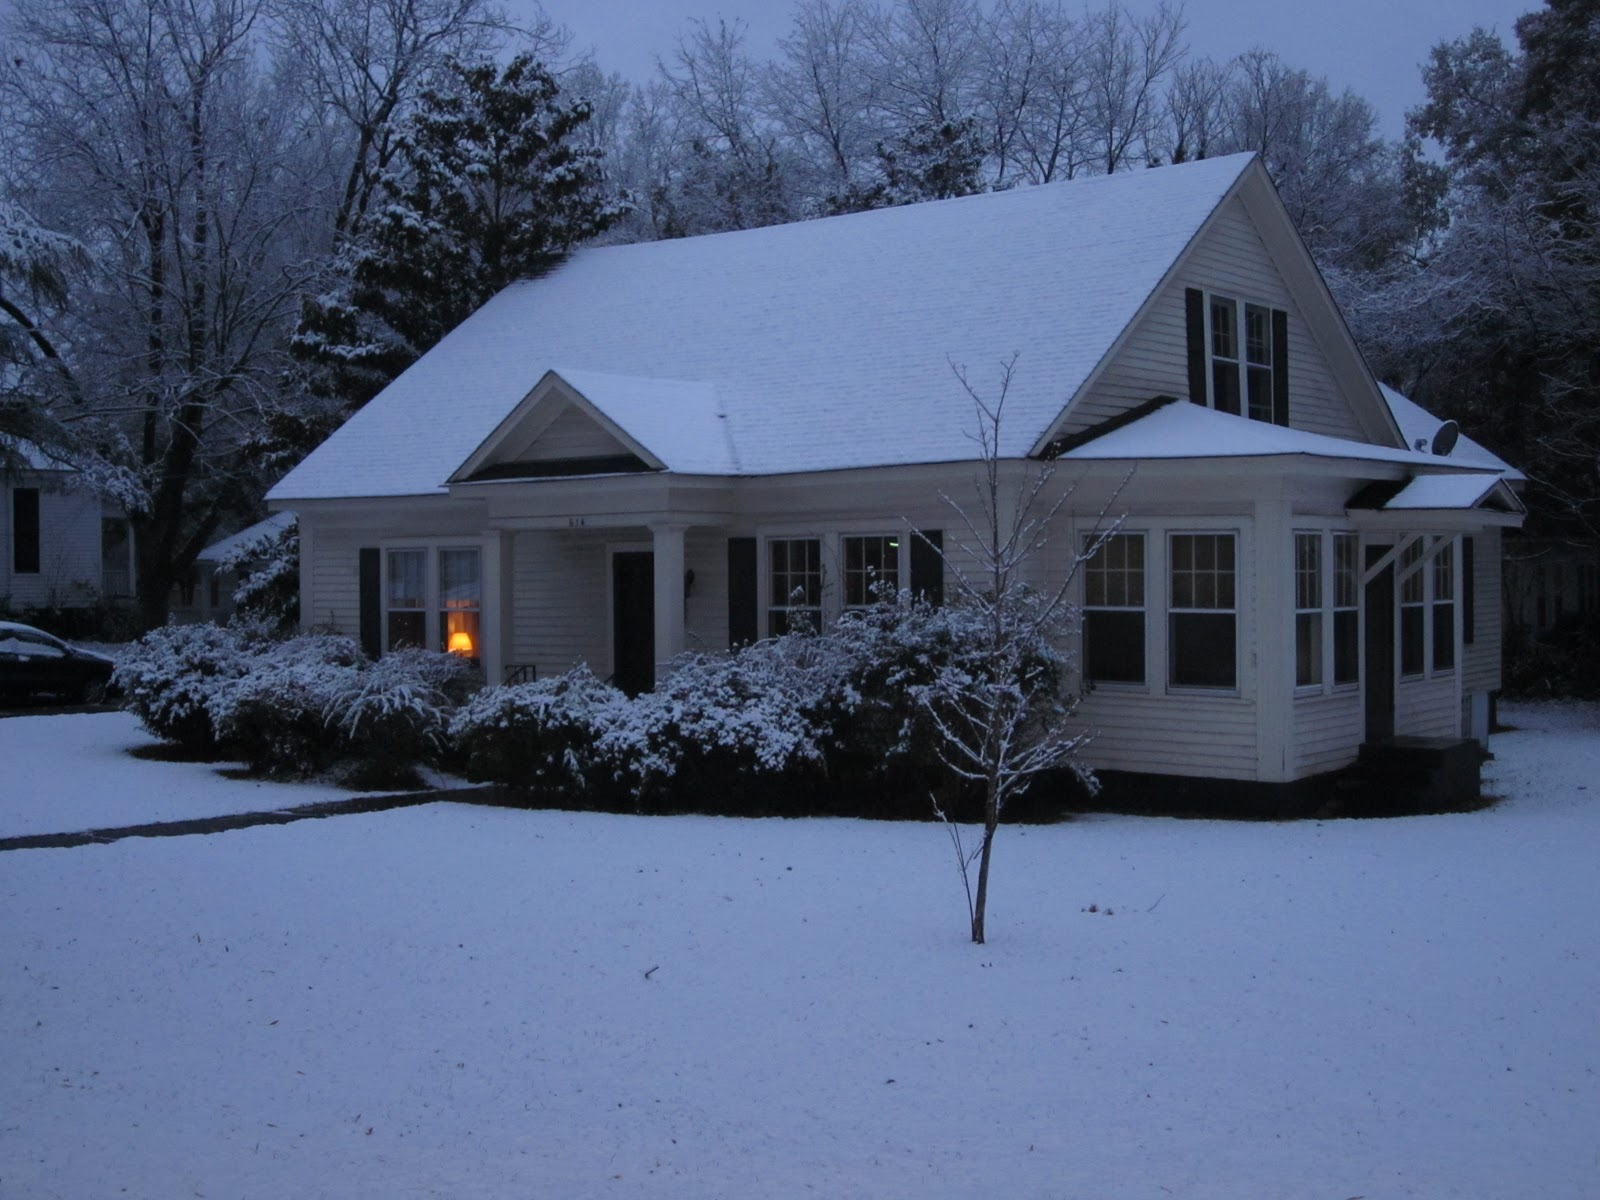 Christmas House With Snow Of our house in the snow